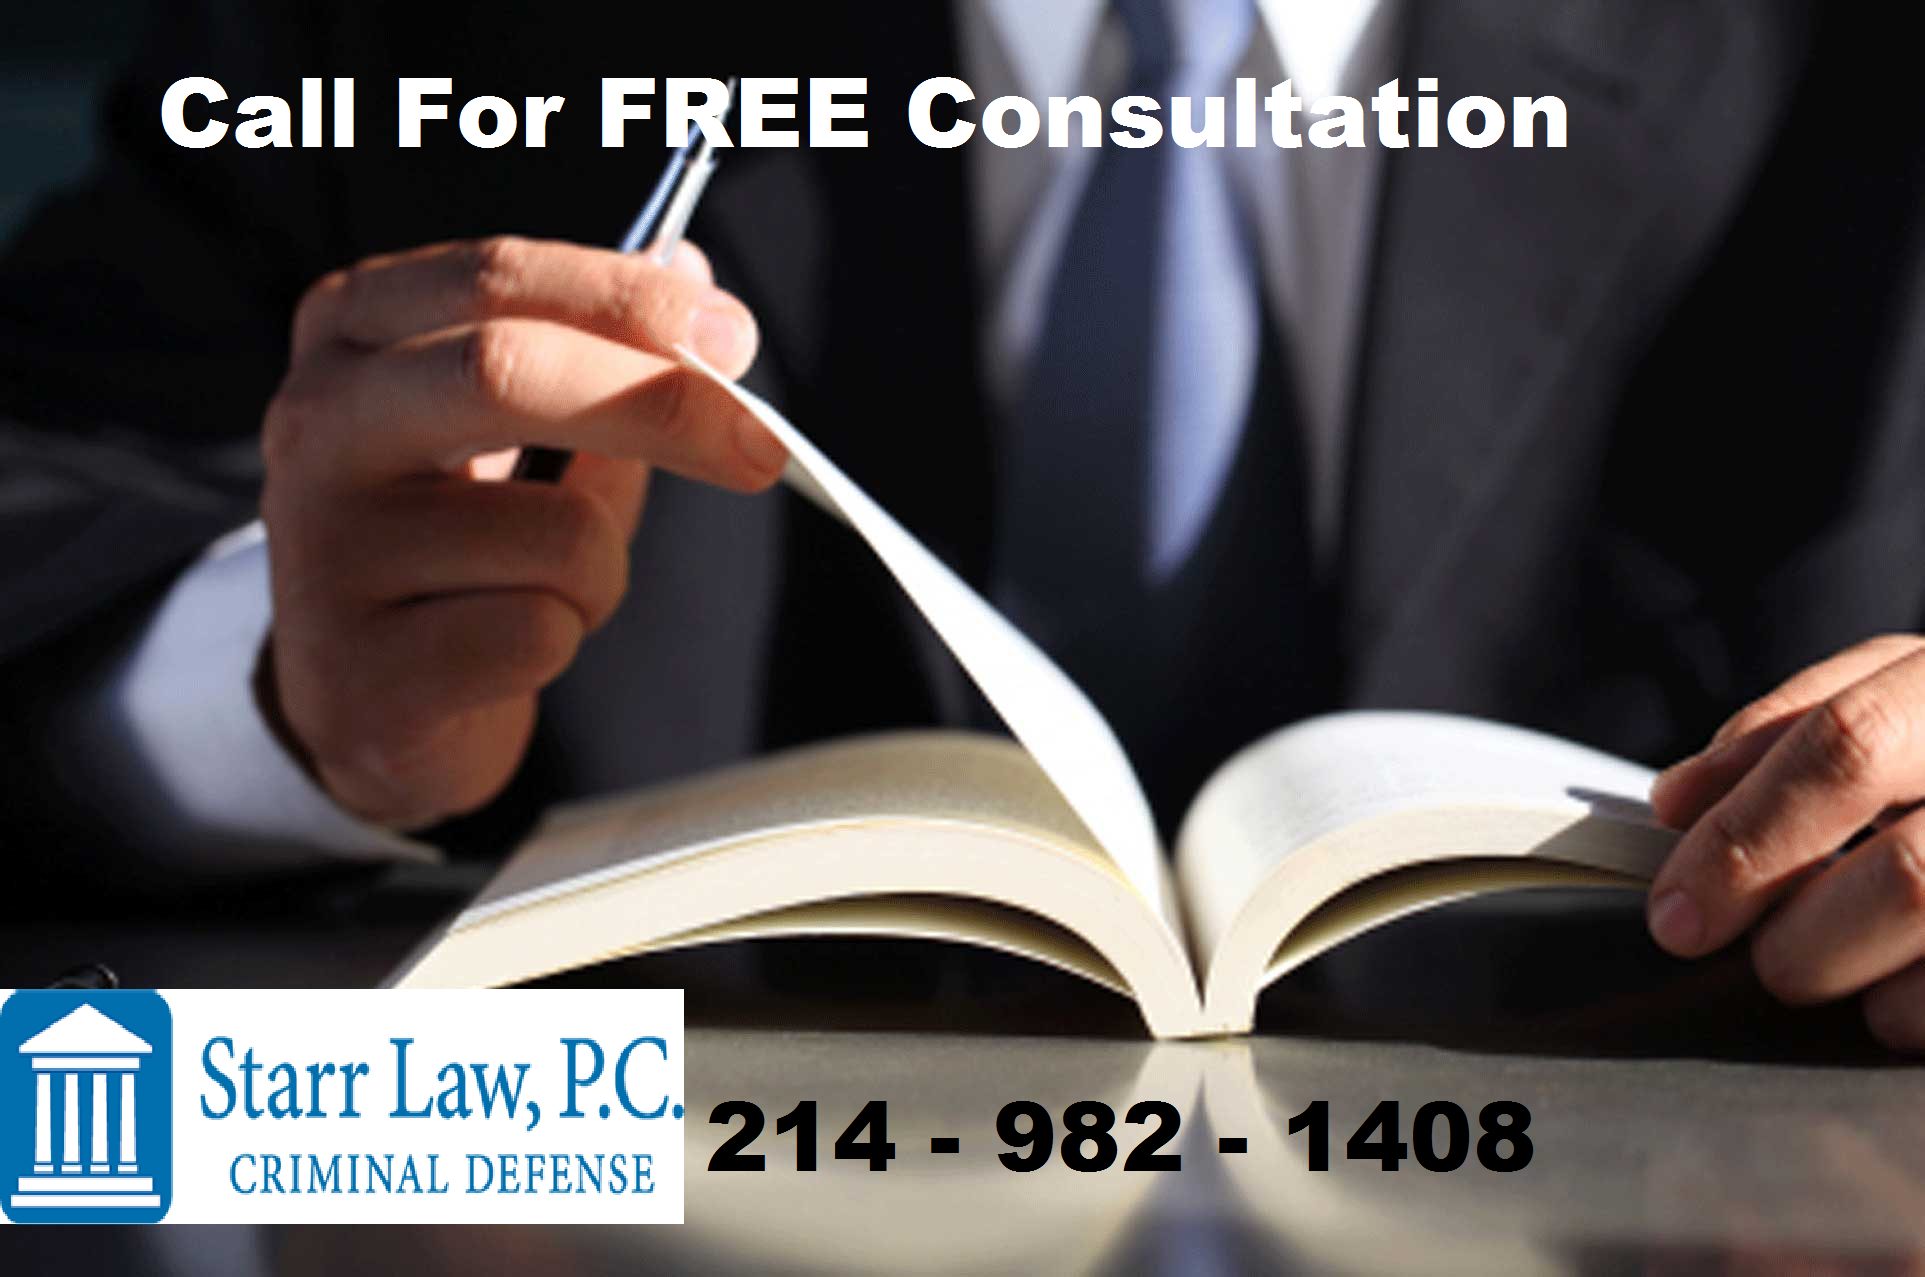 The Best Occupational Driver's License Attorney Plano Texas